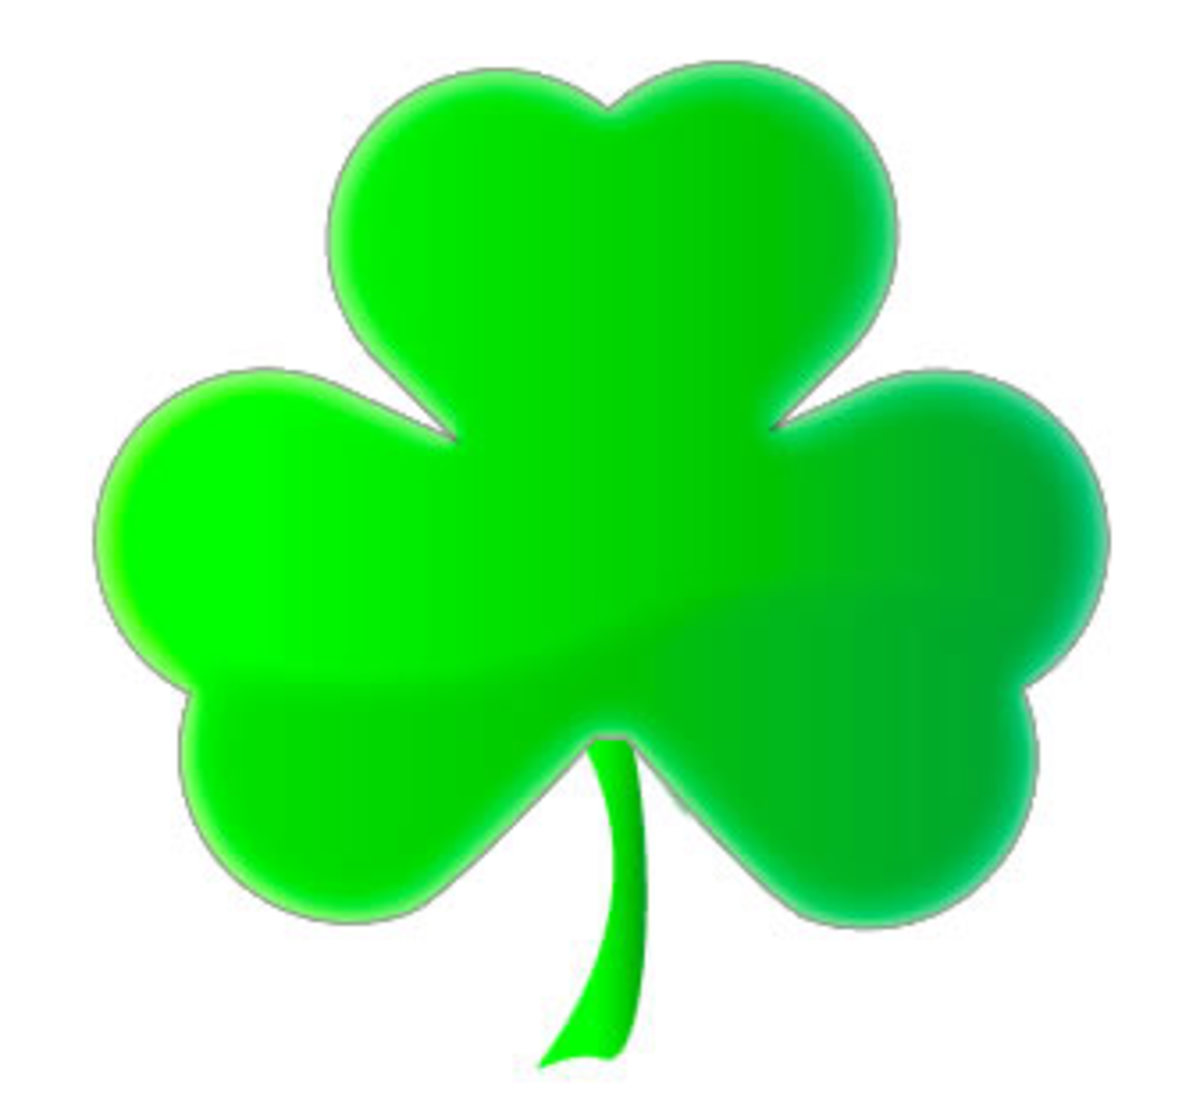 shamrock -- IRISH emblem